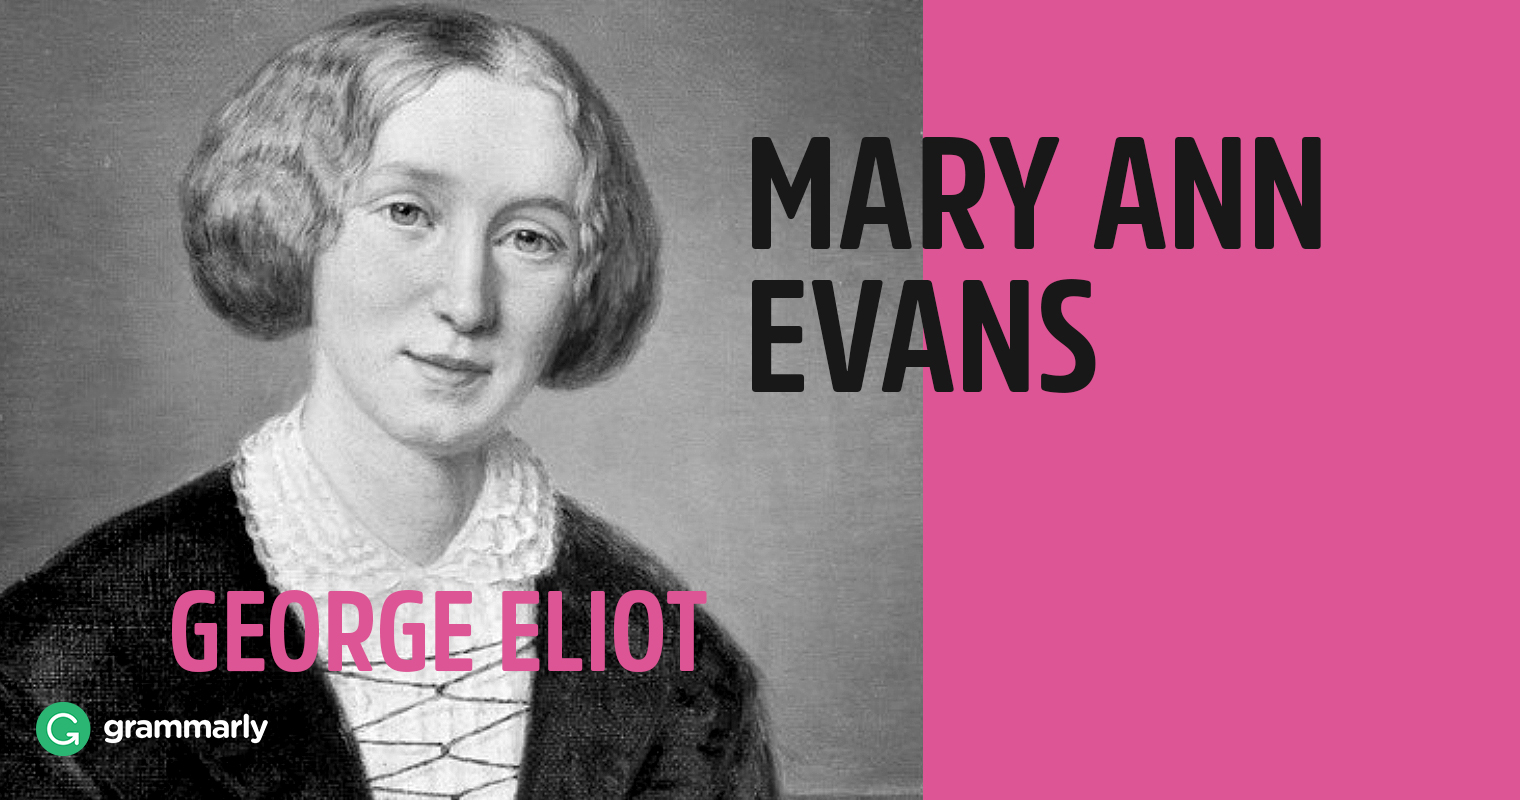 Mary Ann Evans and George Eliot